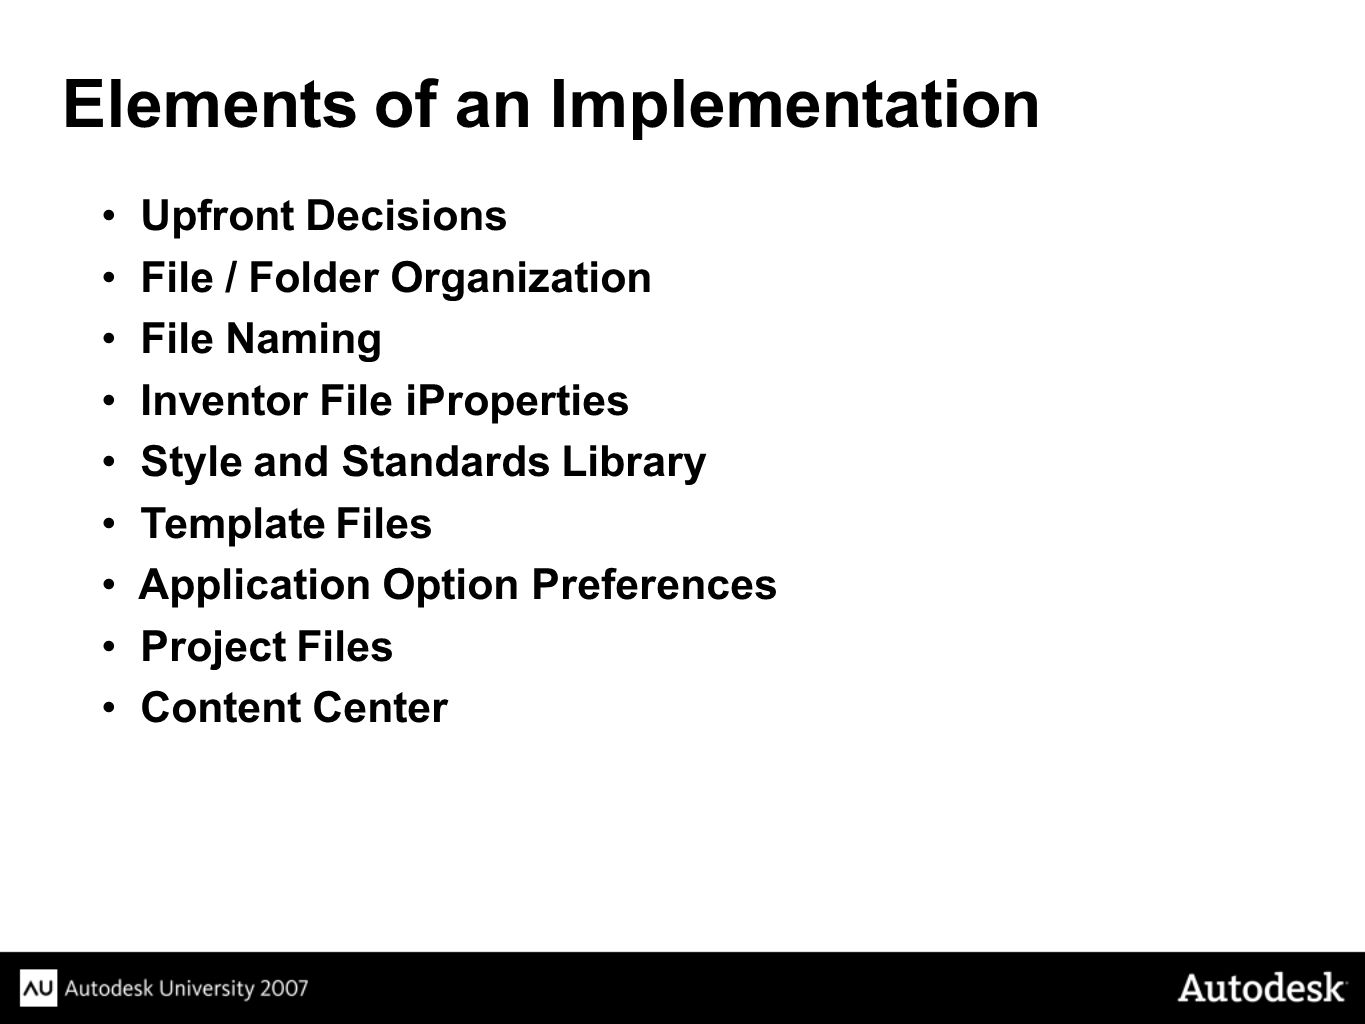 Upfront Decisions File / Folder Organization File Naming Inventor File iProperties Style and Standards Library Template Files Application Option Preferences Project Files Content Center Elements of an Implementation